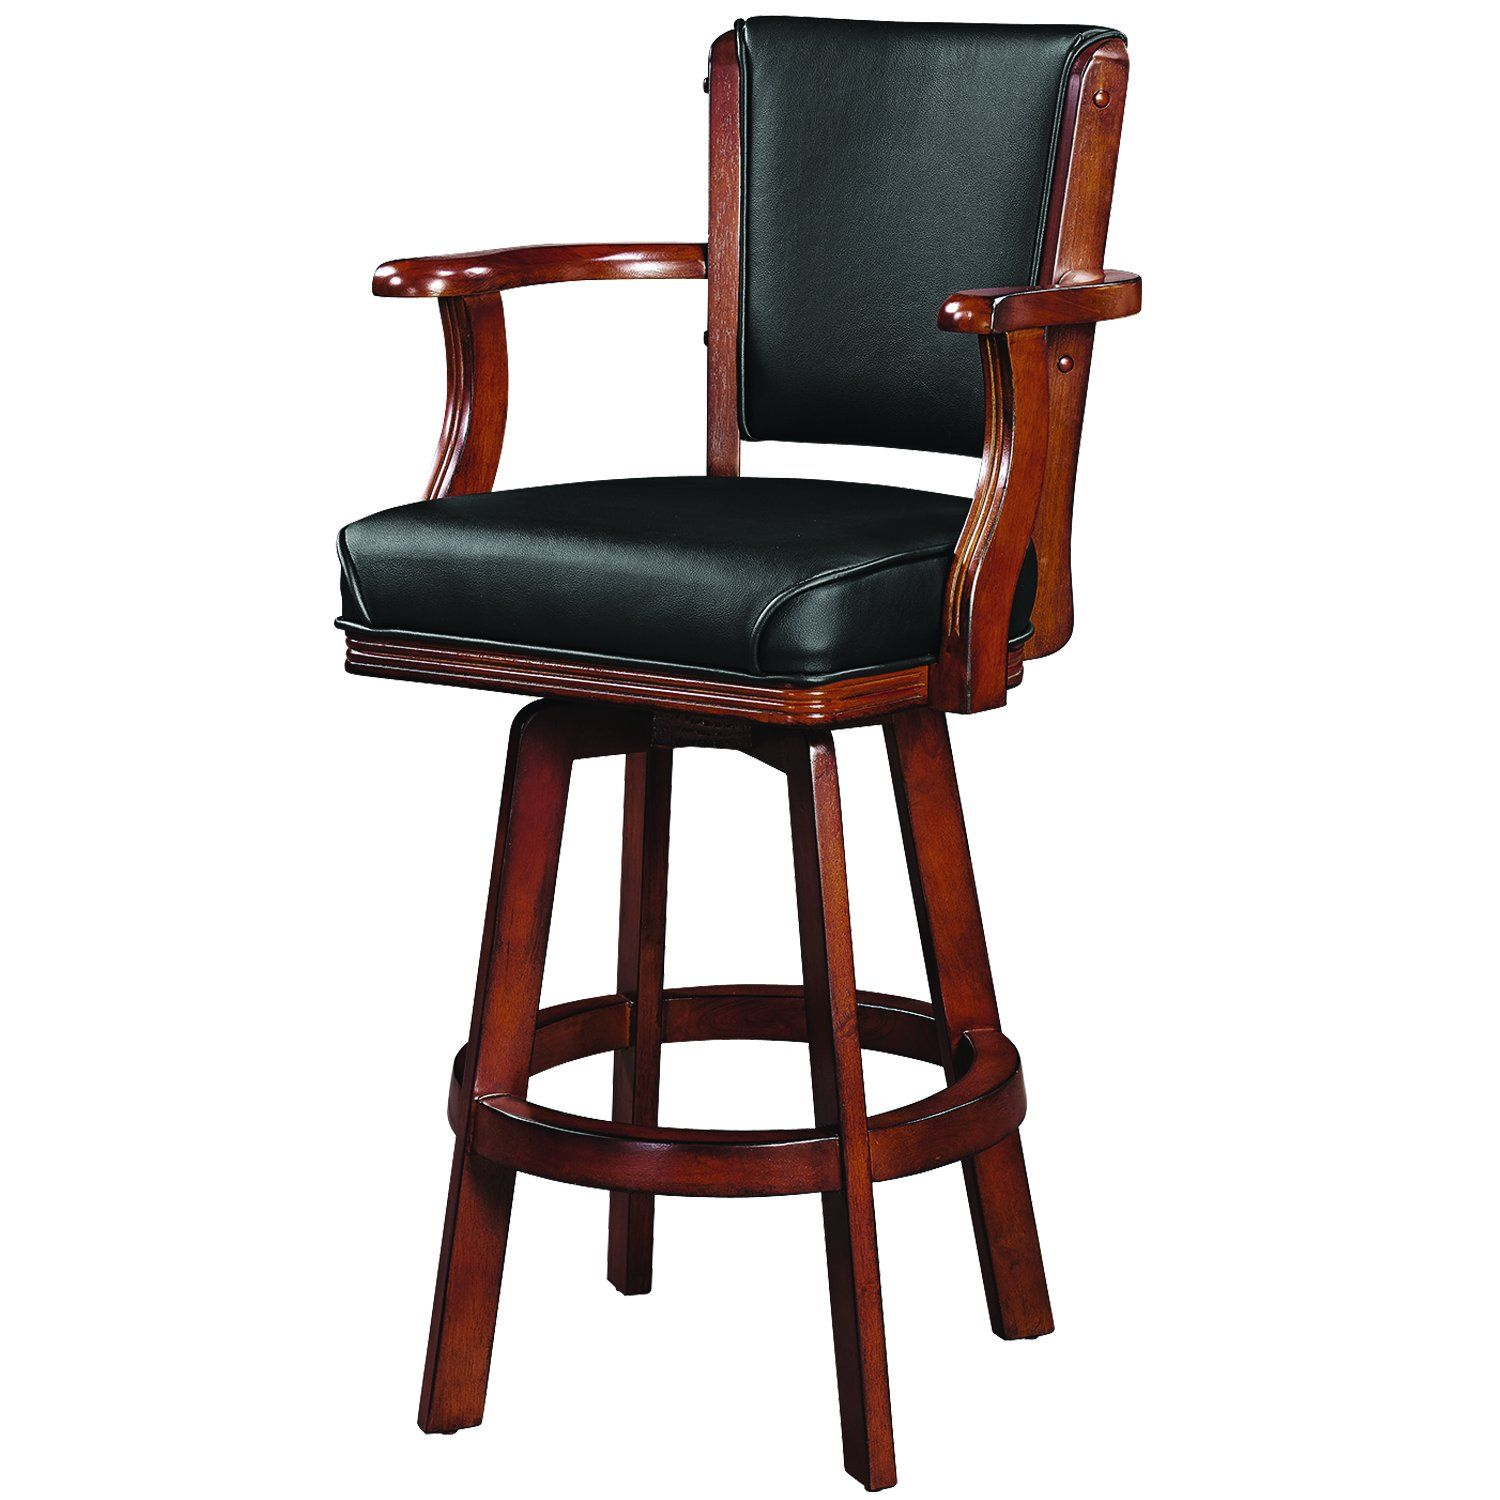 Ram game room swivel barstool with arms chestnut man cave arcade man cave lighting